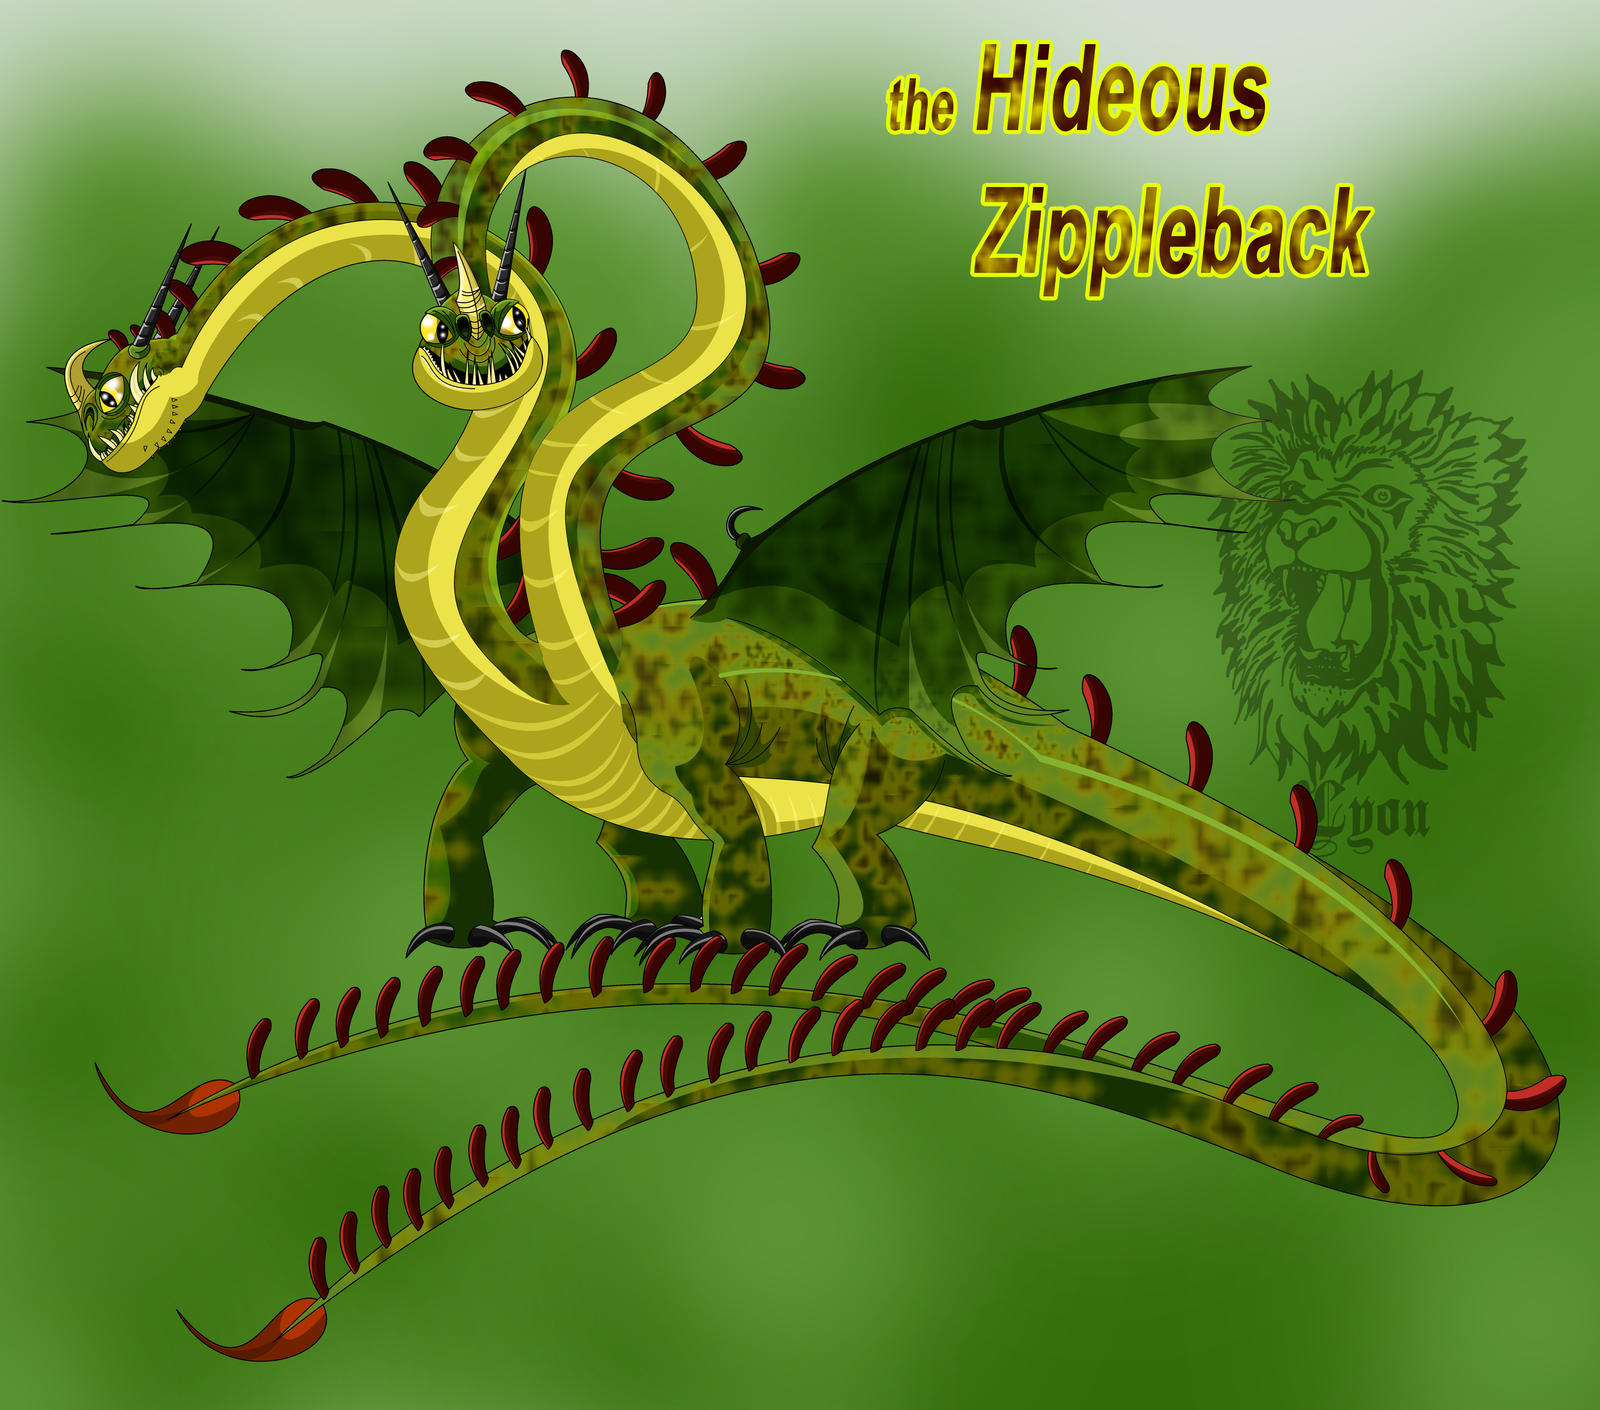 The Hideous Zippleback by TheDocRoach on DeviantArt